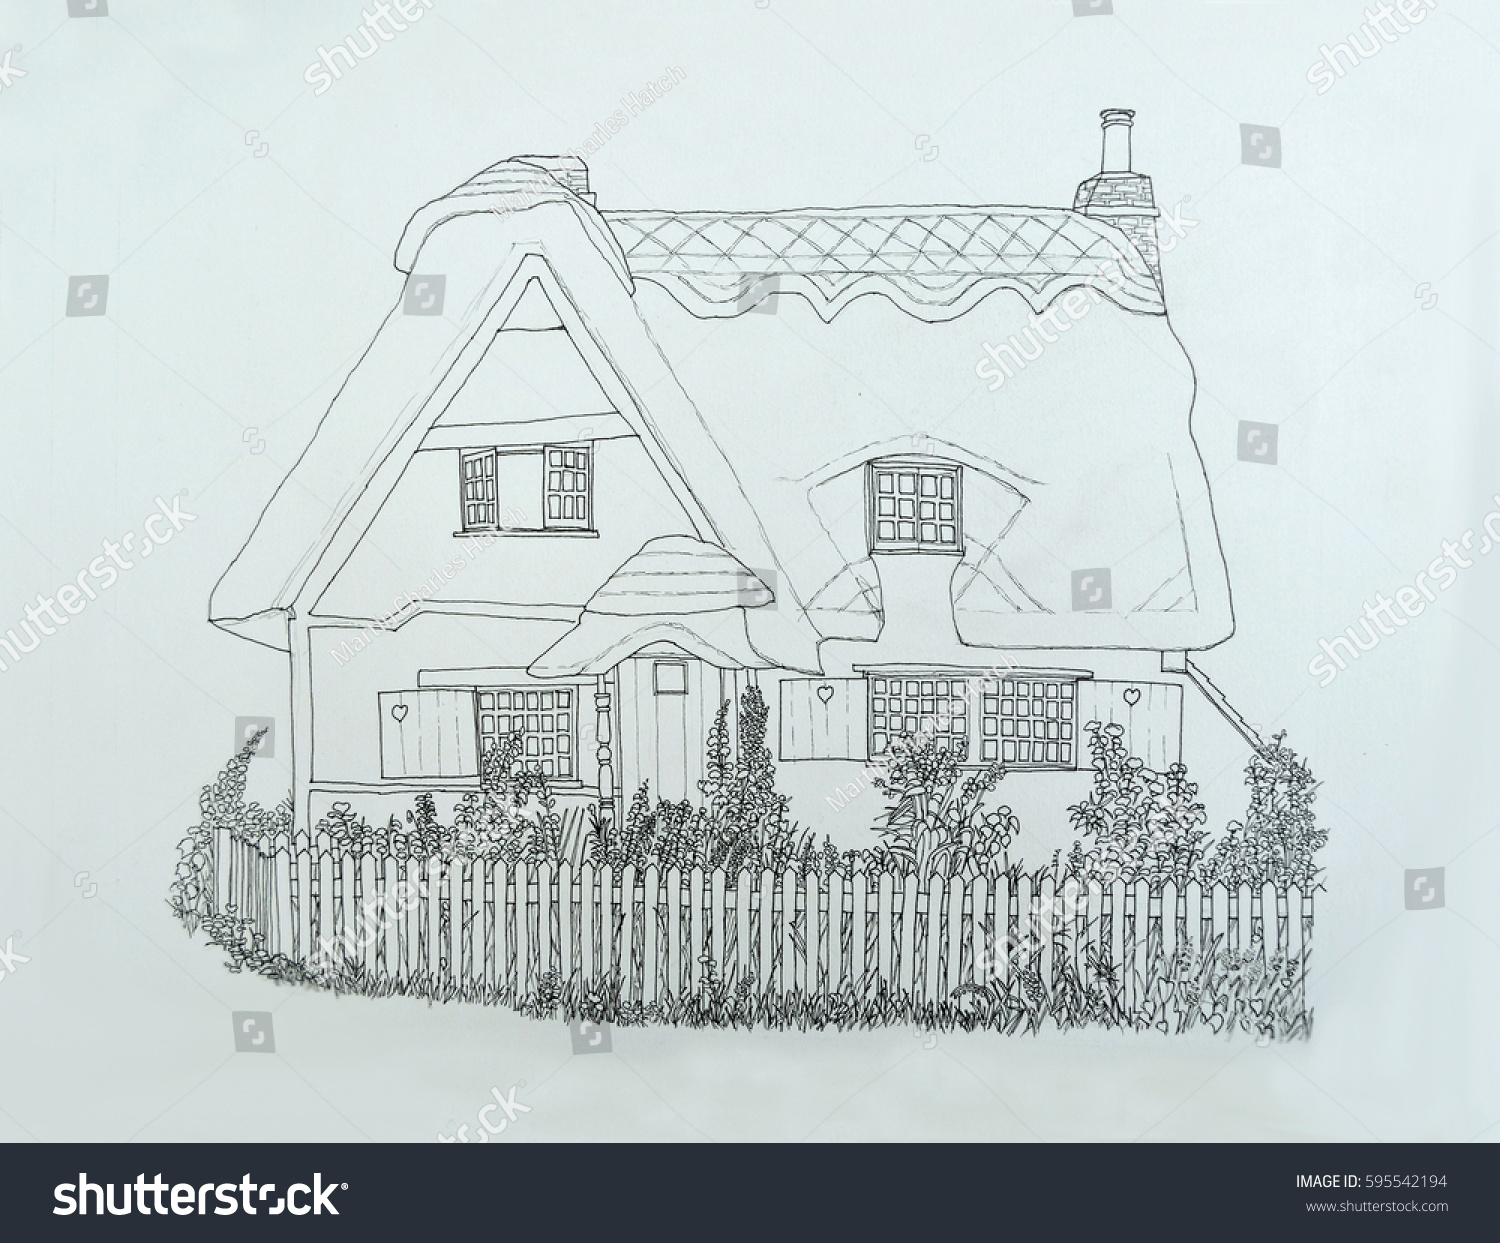 picket fence drawing. Ink Line Drawing Of English Thatched Cottage With Garden And Picket Fence. Fence